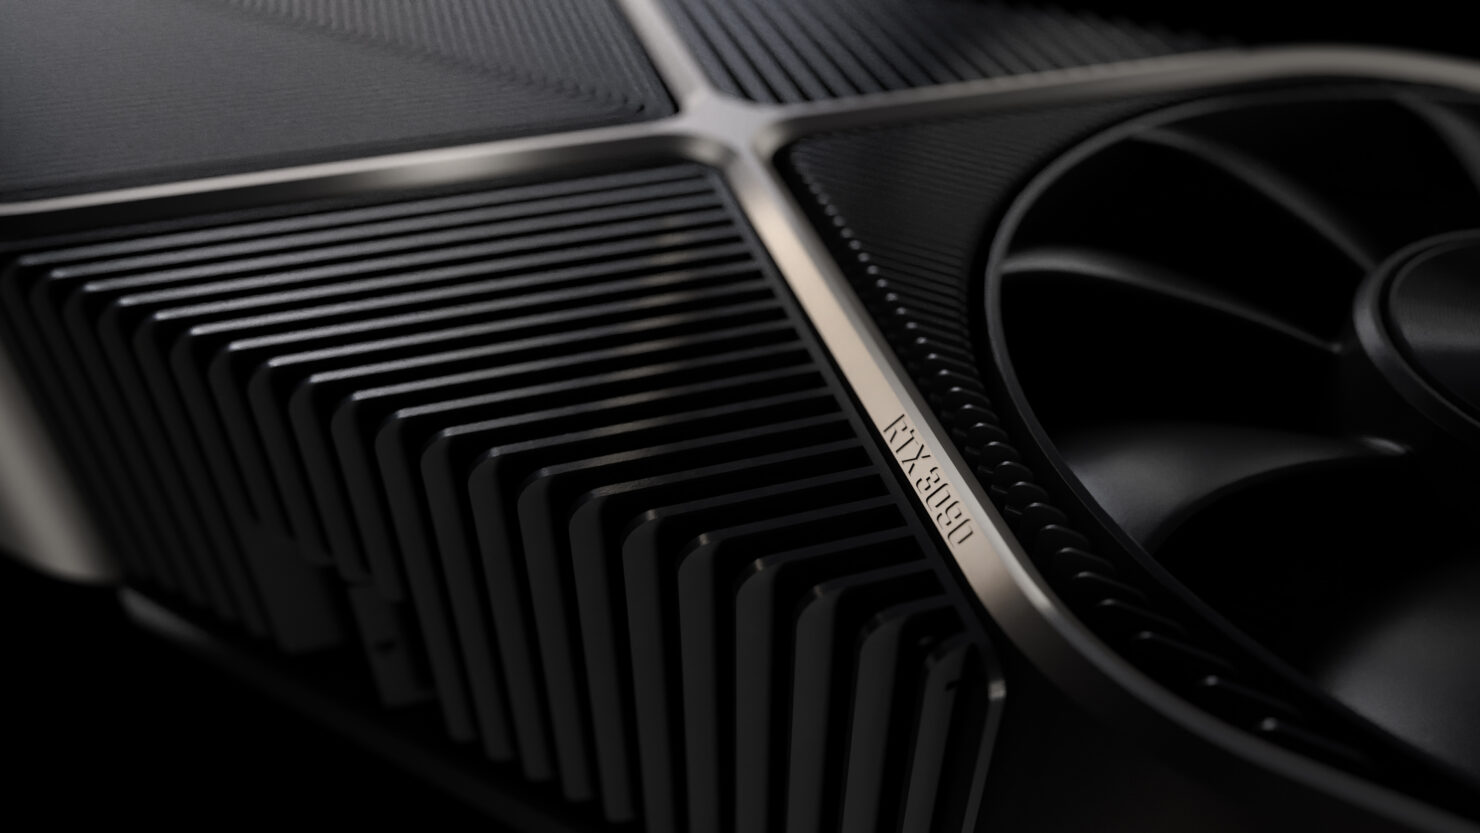 nvidia-geforce-rtx-3080-ti-now-rumored-to-launch-inhellip